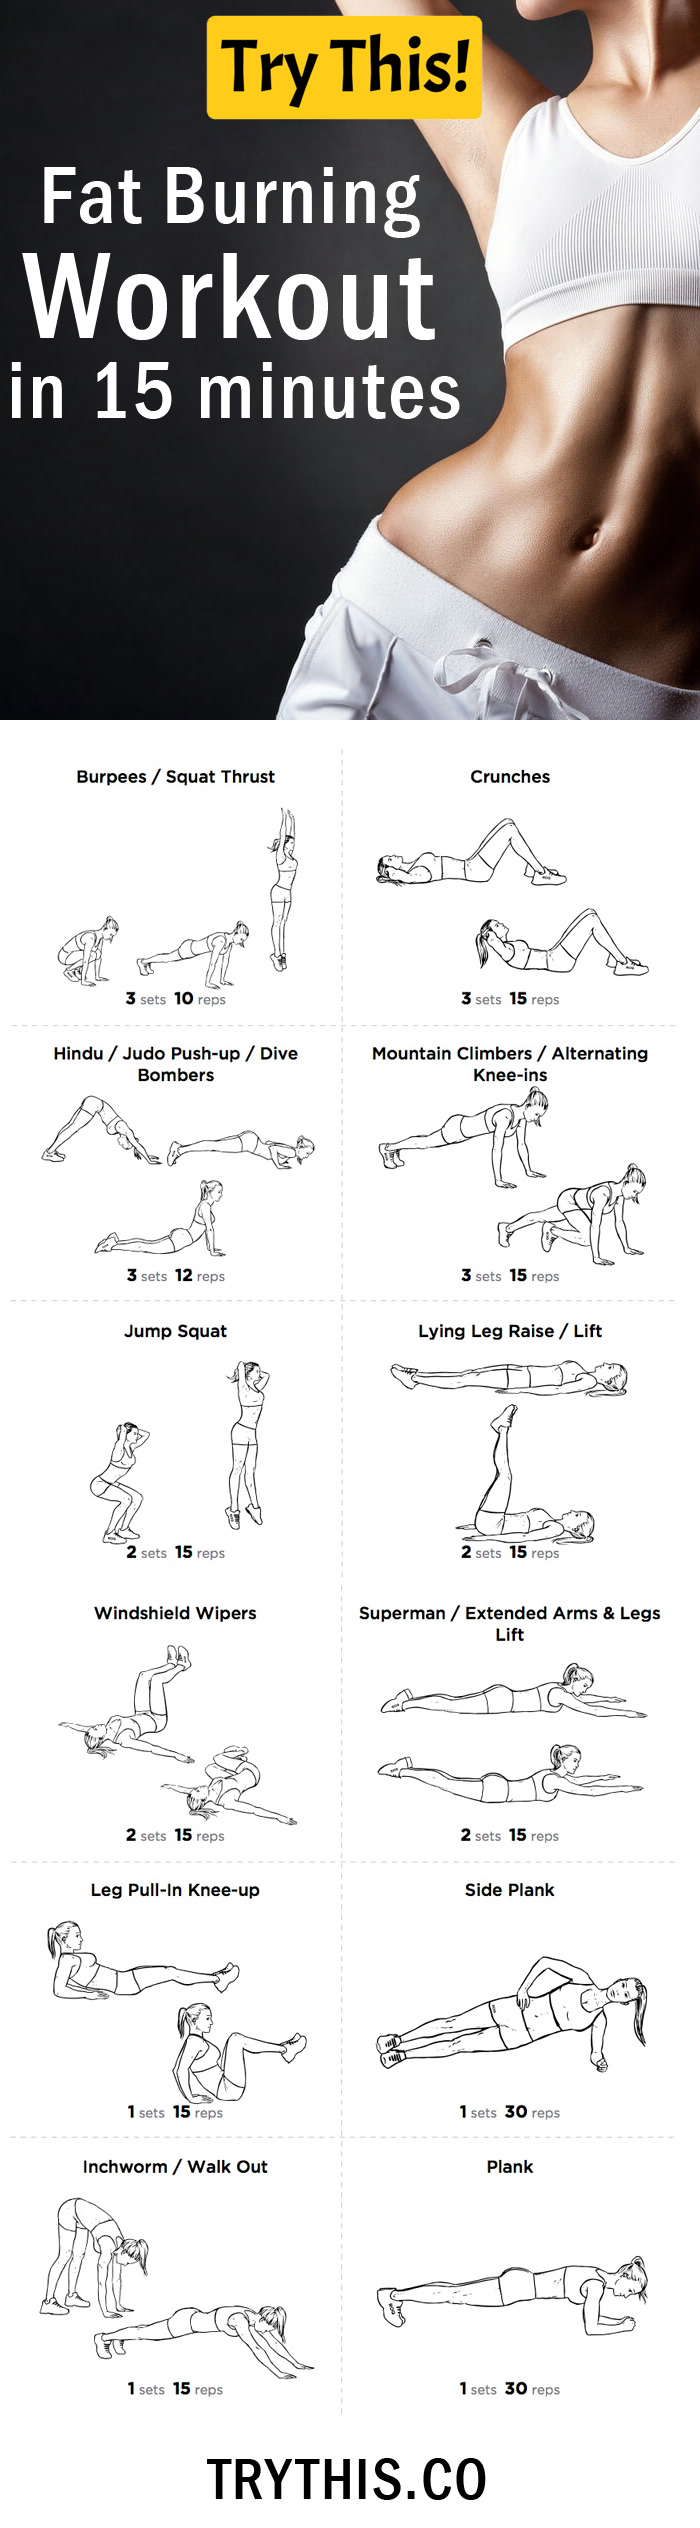 Workout Plans: Fat Burning Workout in 15 minutes